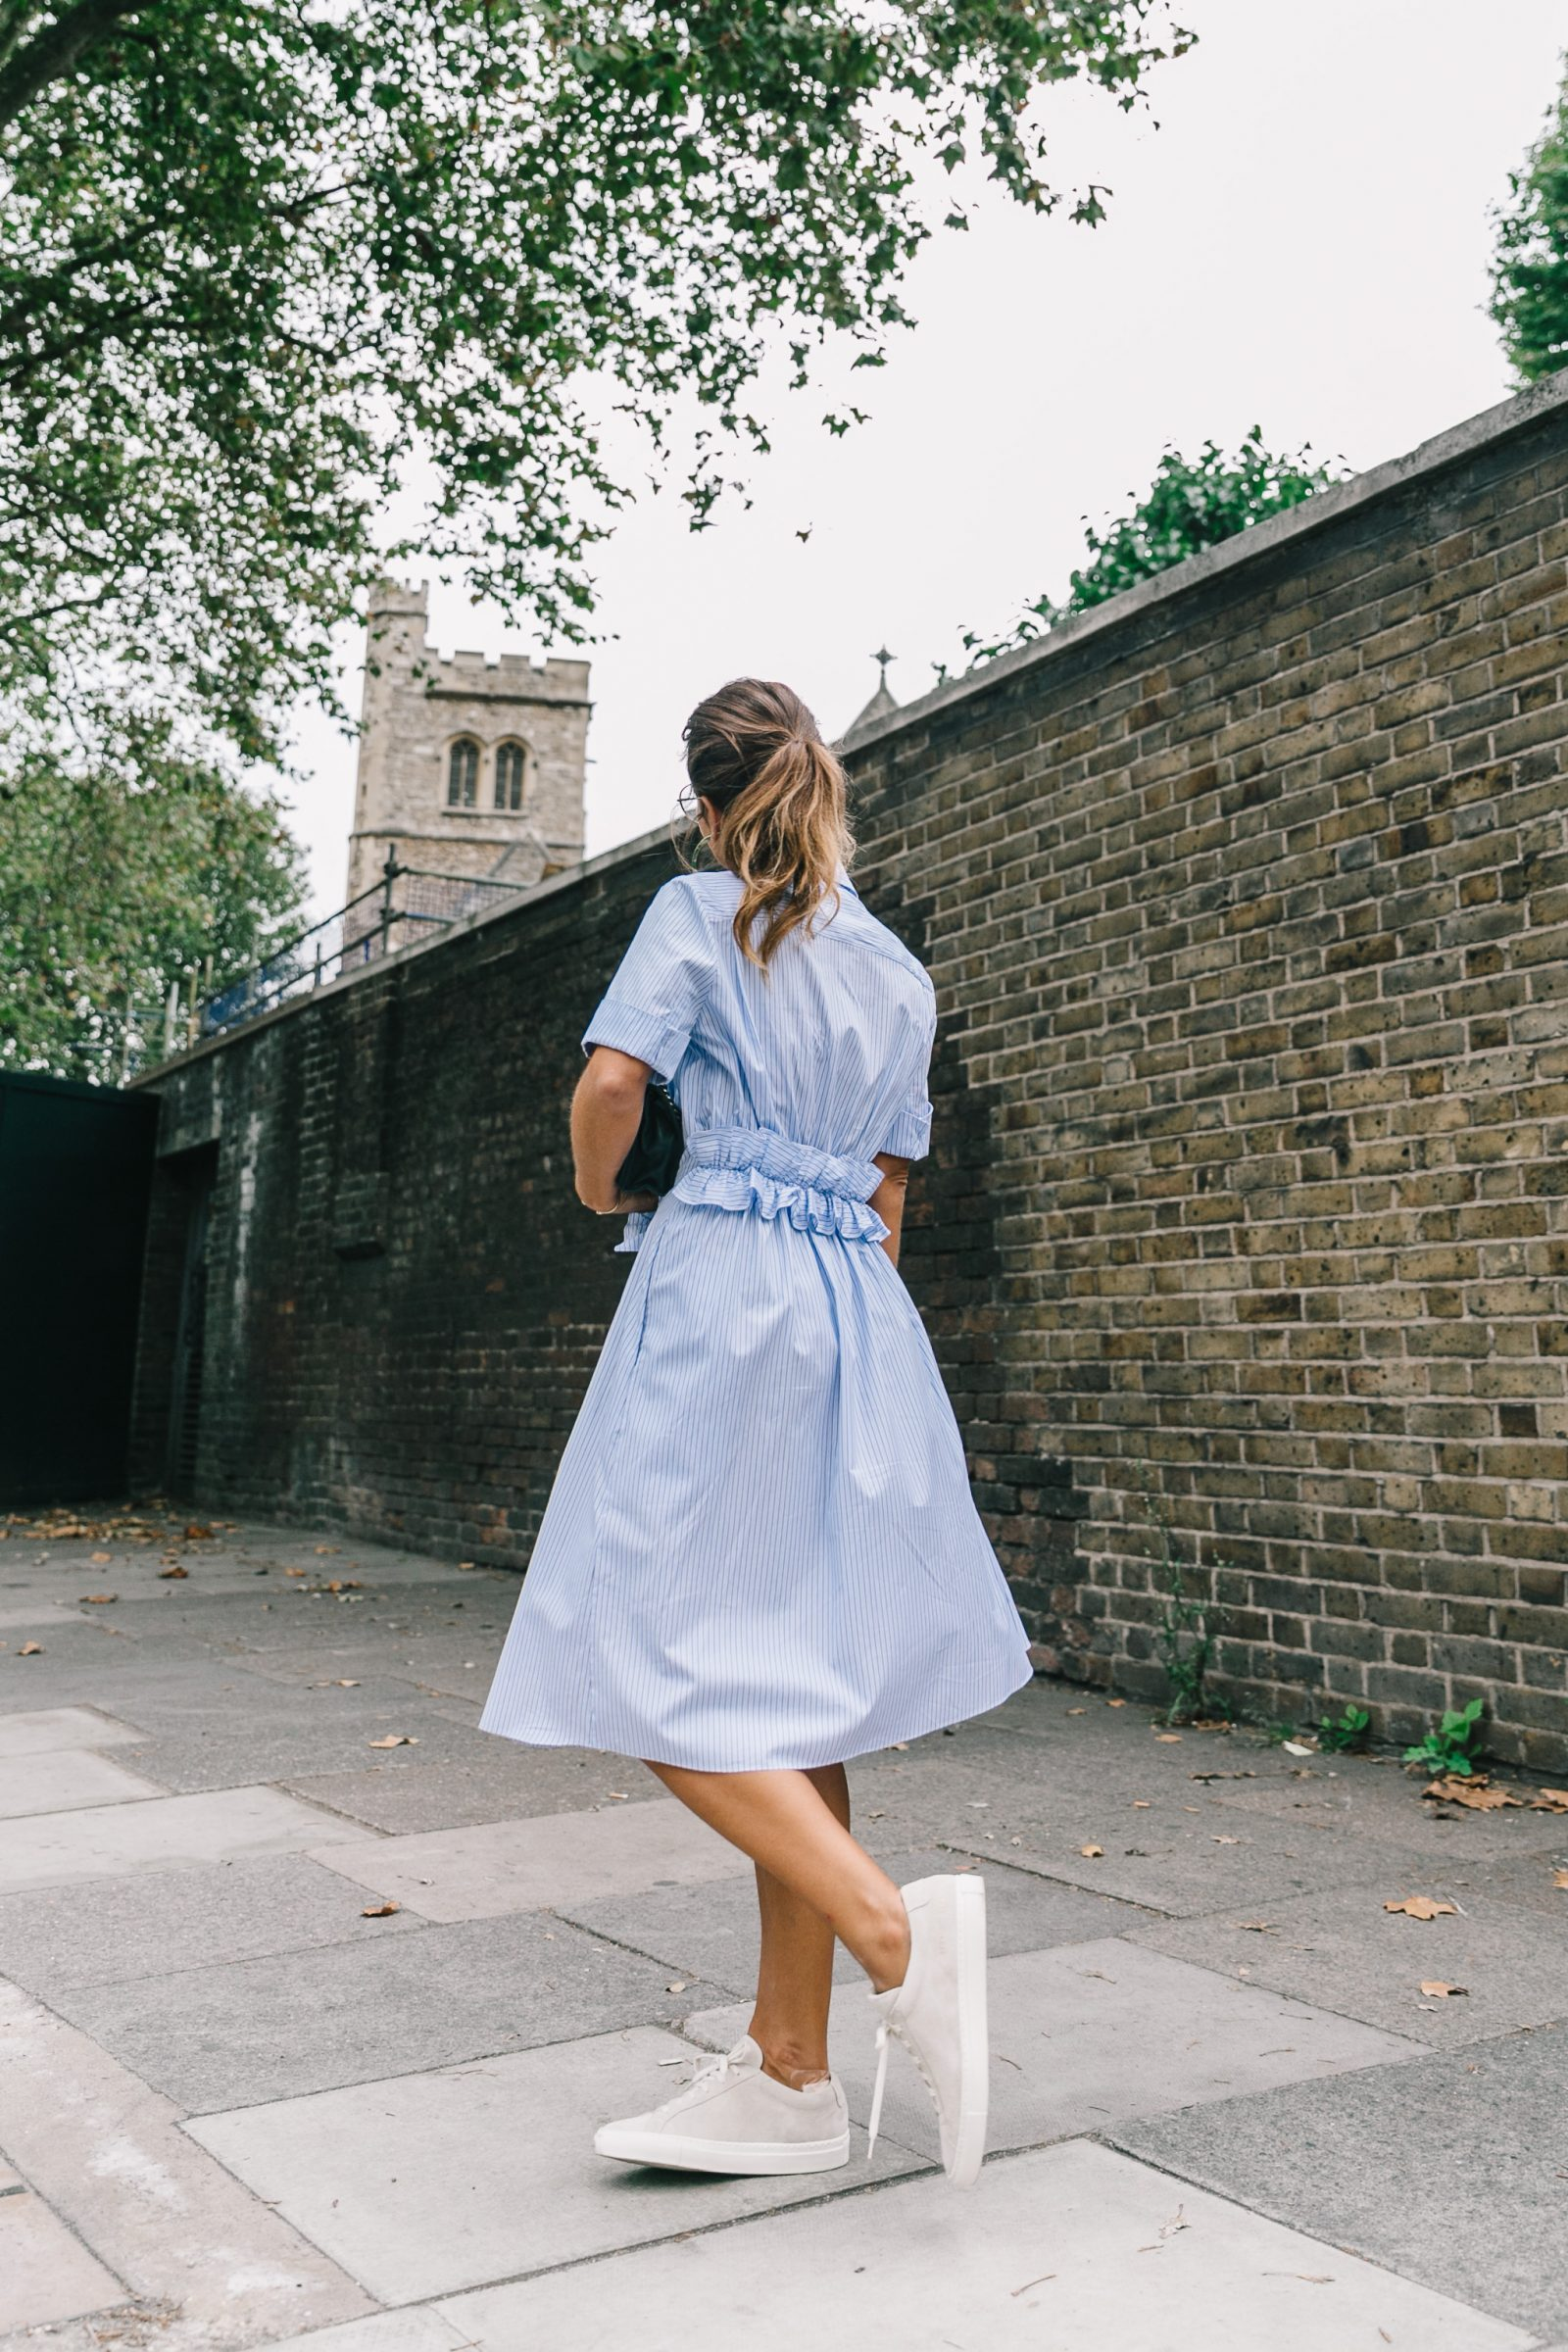 lfw-london_fashion_week_ss17-street_style-outfits-collage_vintage-vintage-stripped_dress-victoria_beckham-avenue_32-17